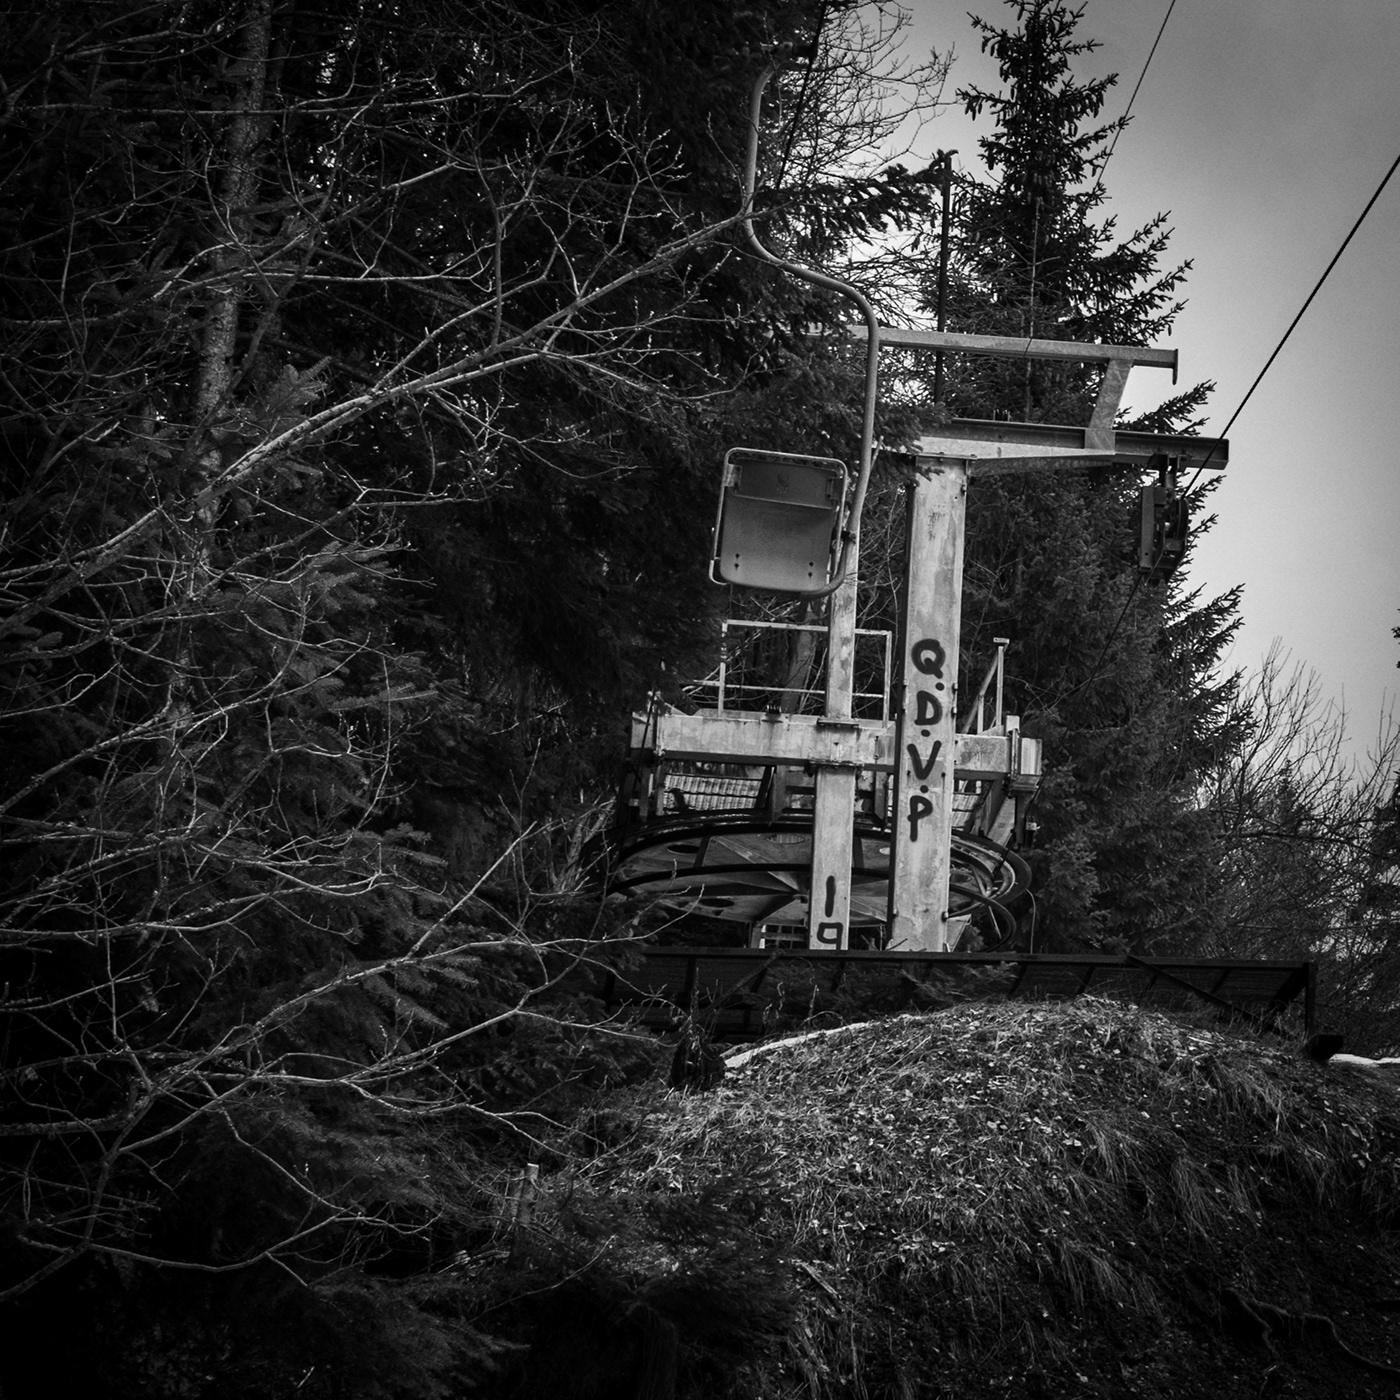 Chair Lifts, out of operation.